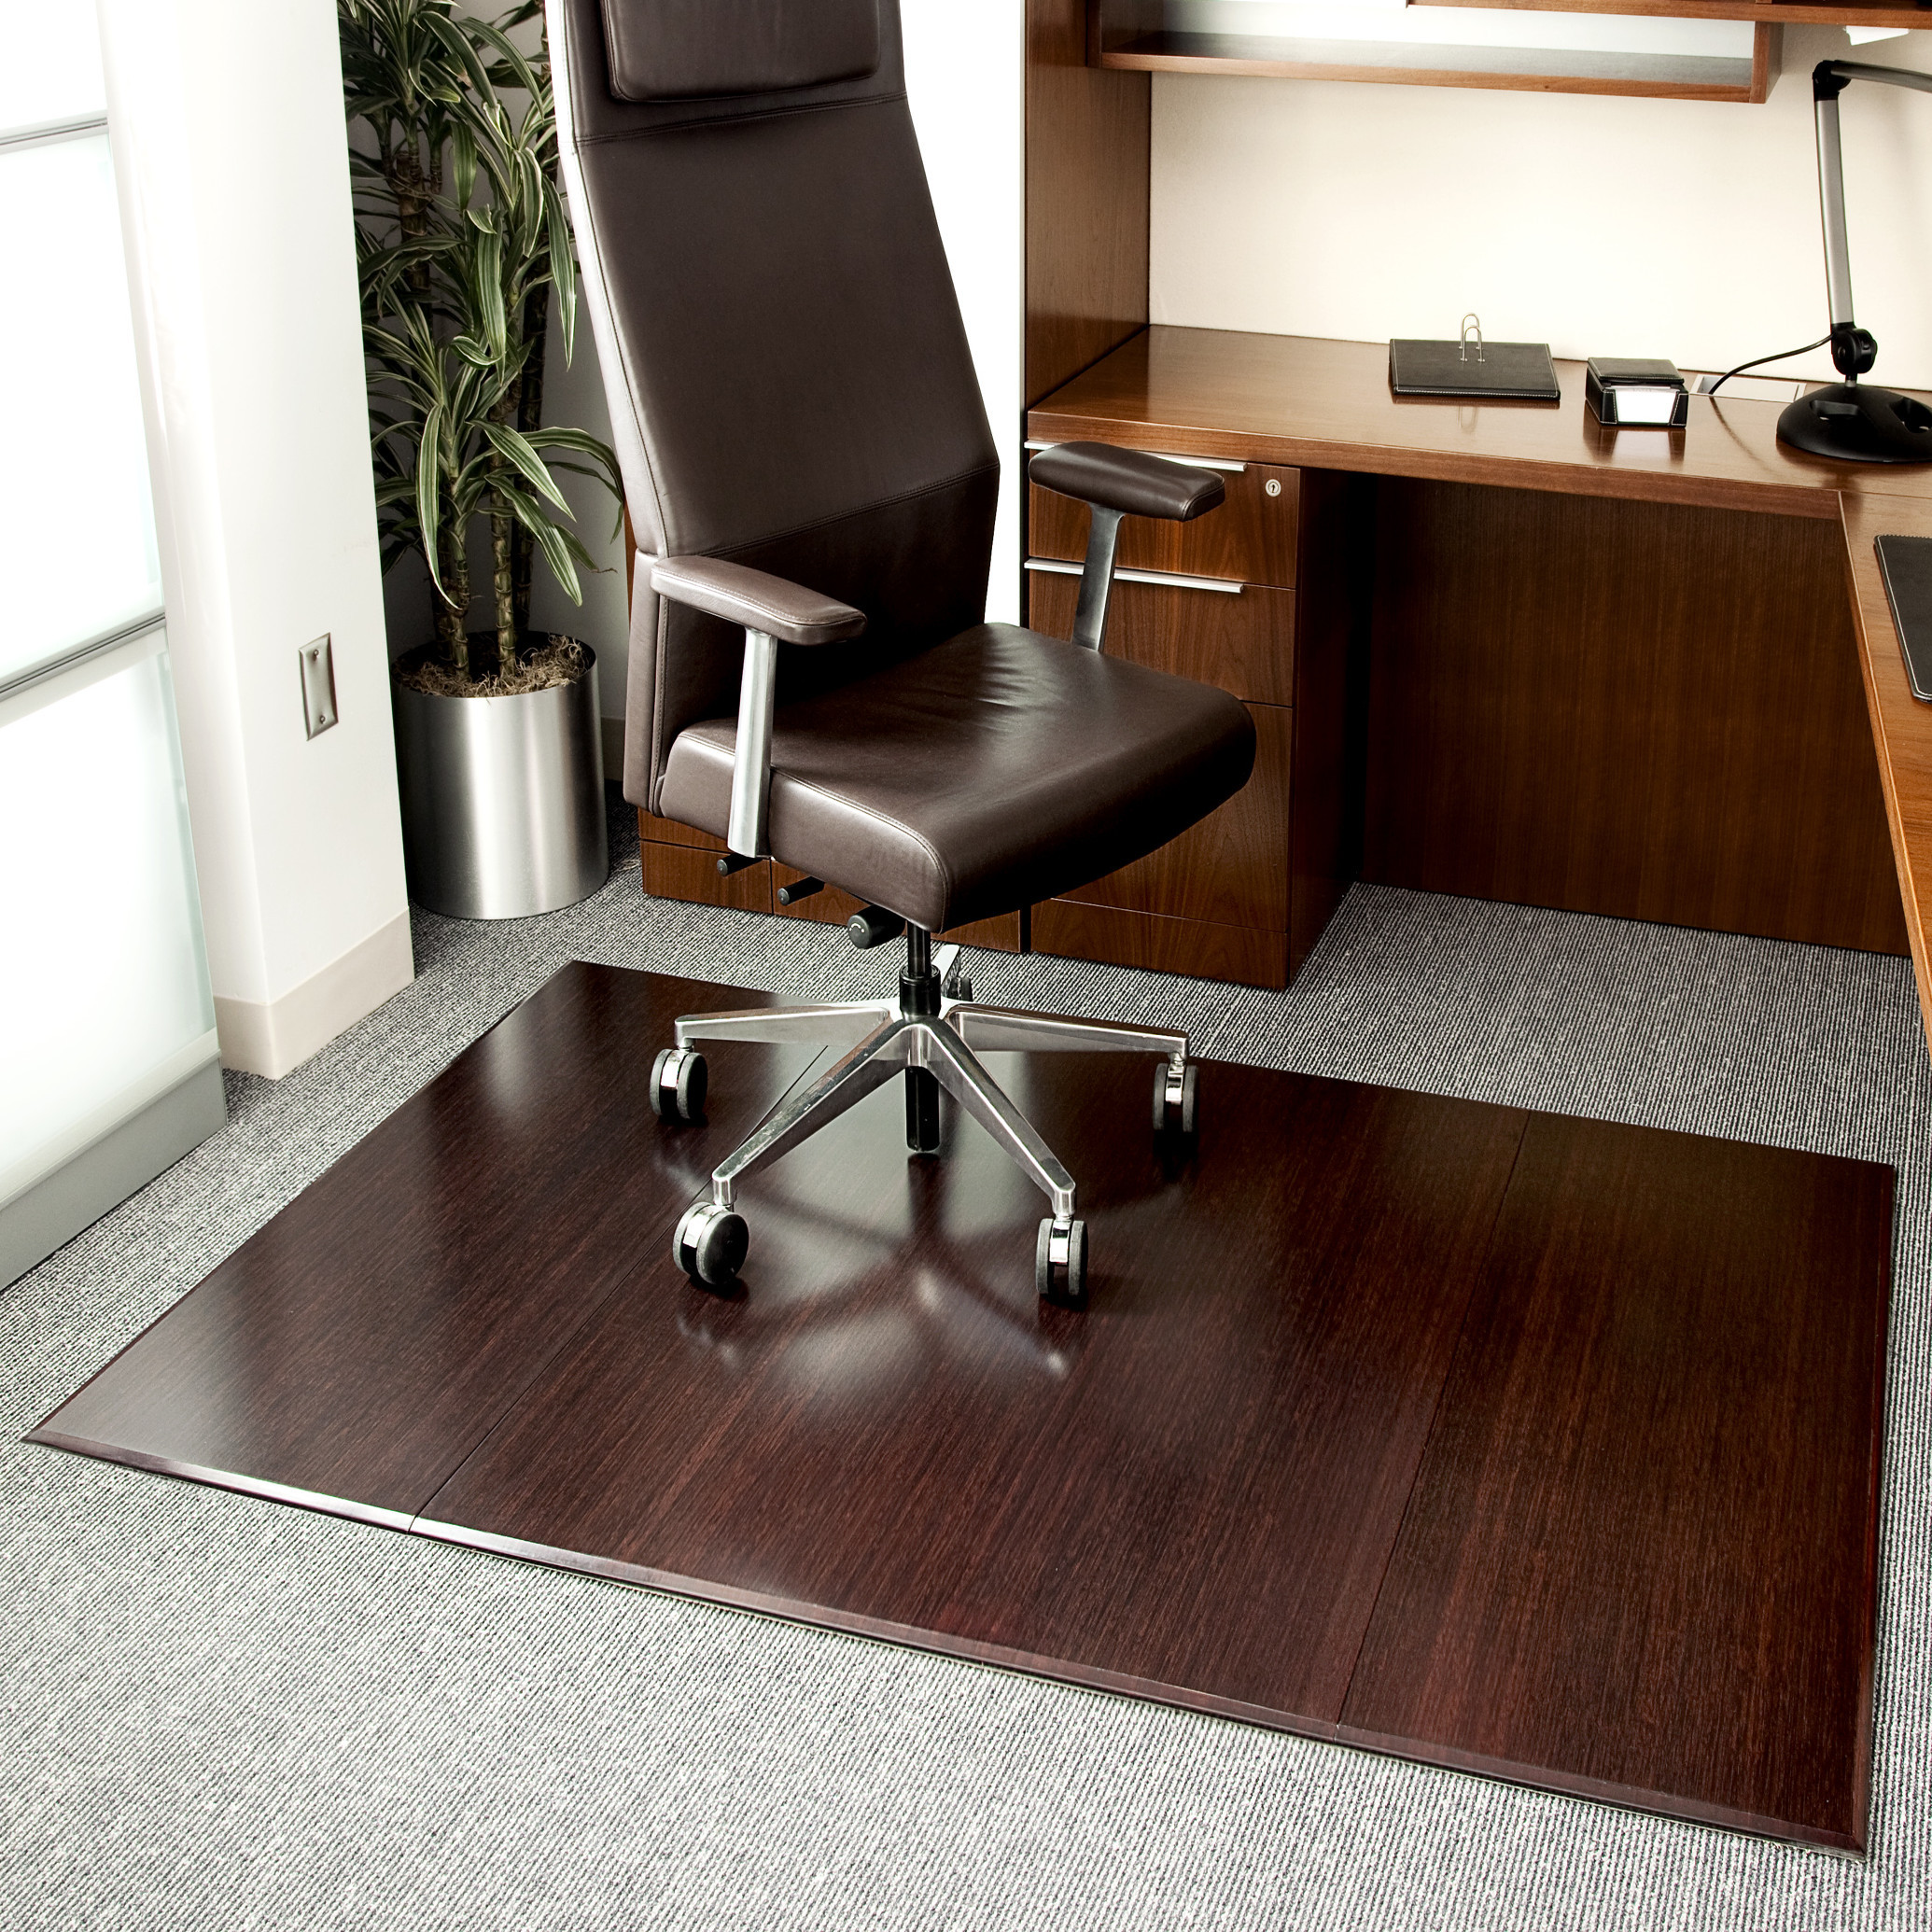 Best ideas about Office Chair Mats . Save or Pin Symple Stuff Beveled Bamboo fice Chairmat & Reviews Now.